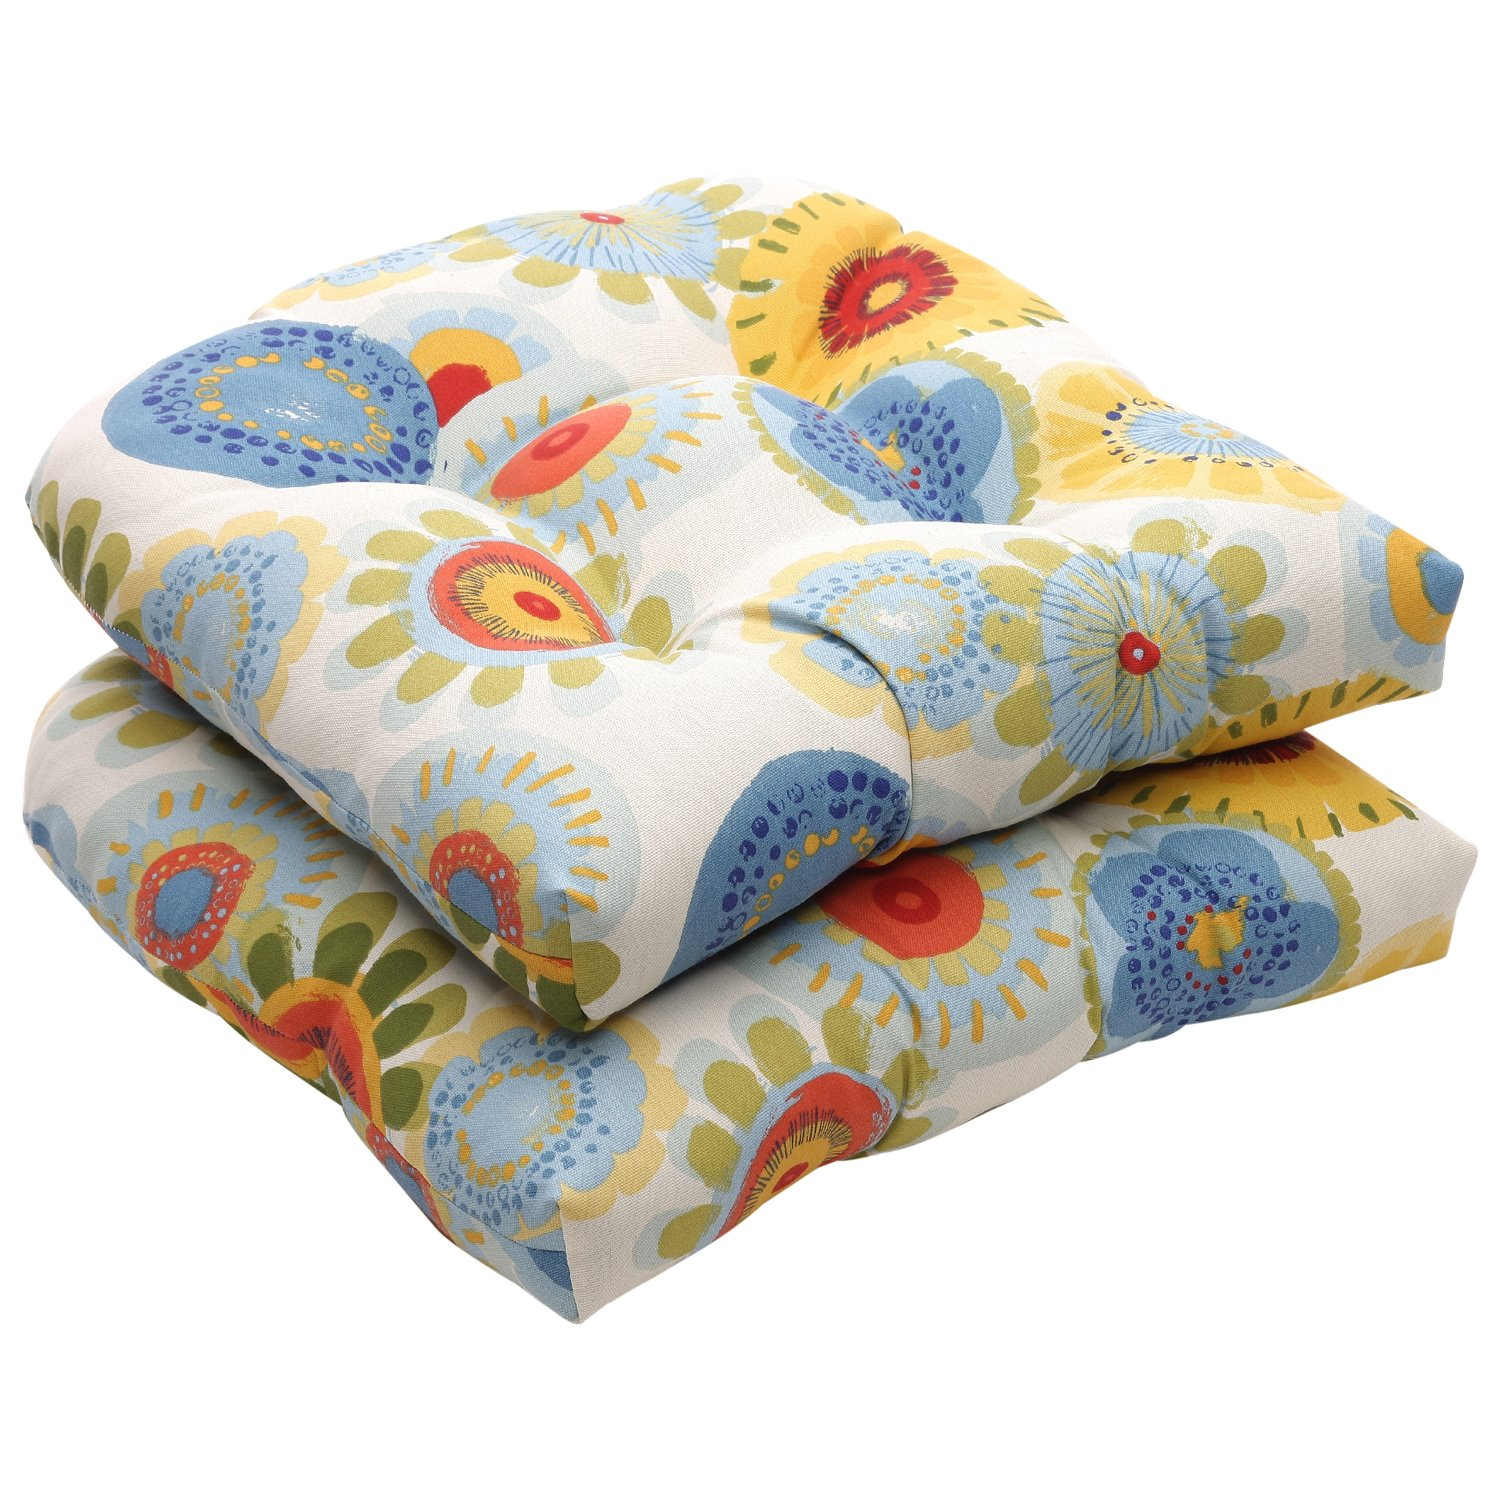 Pillow Perfect Indoor/Outdoor Multicolored Floral